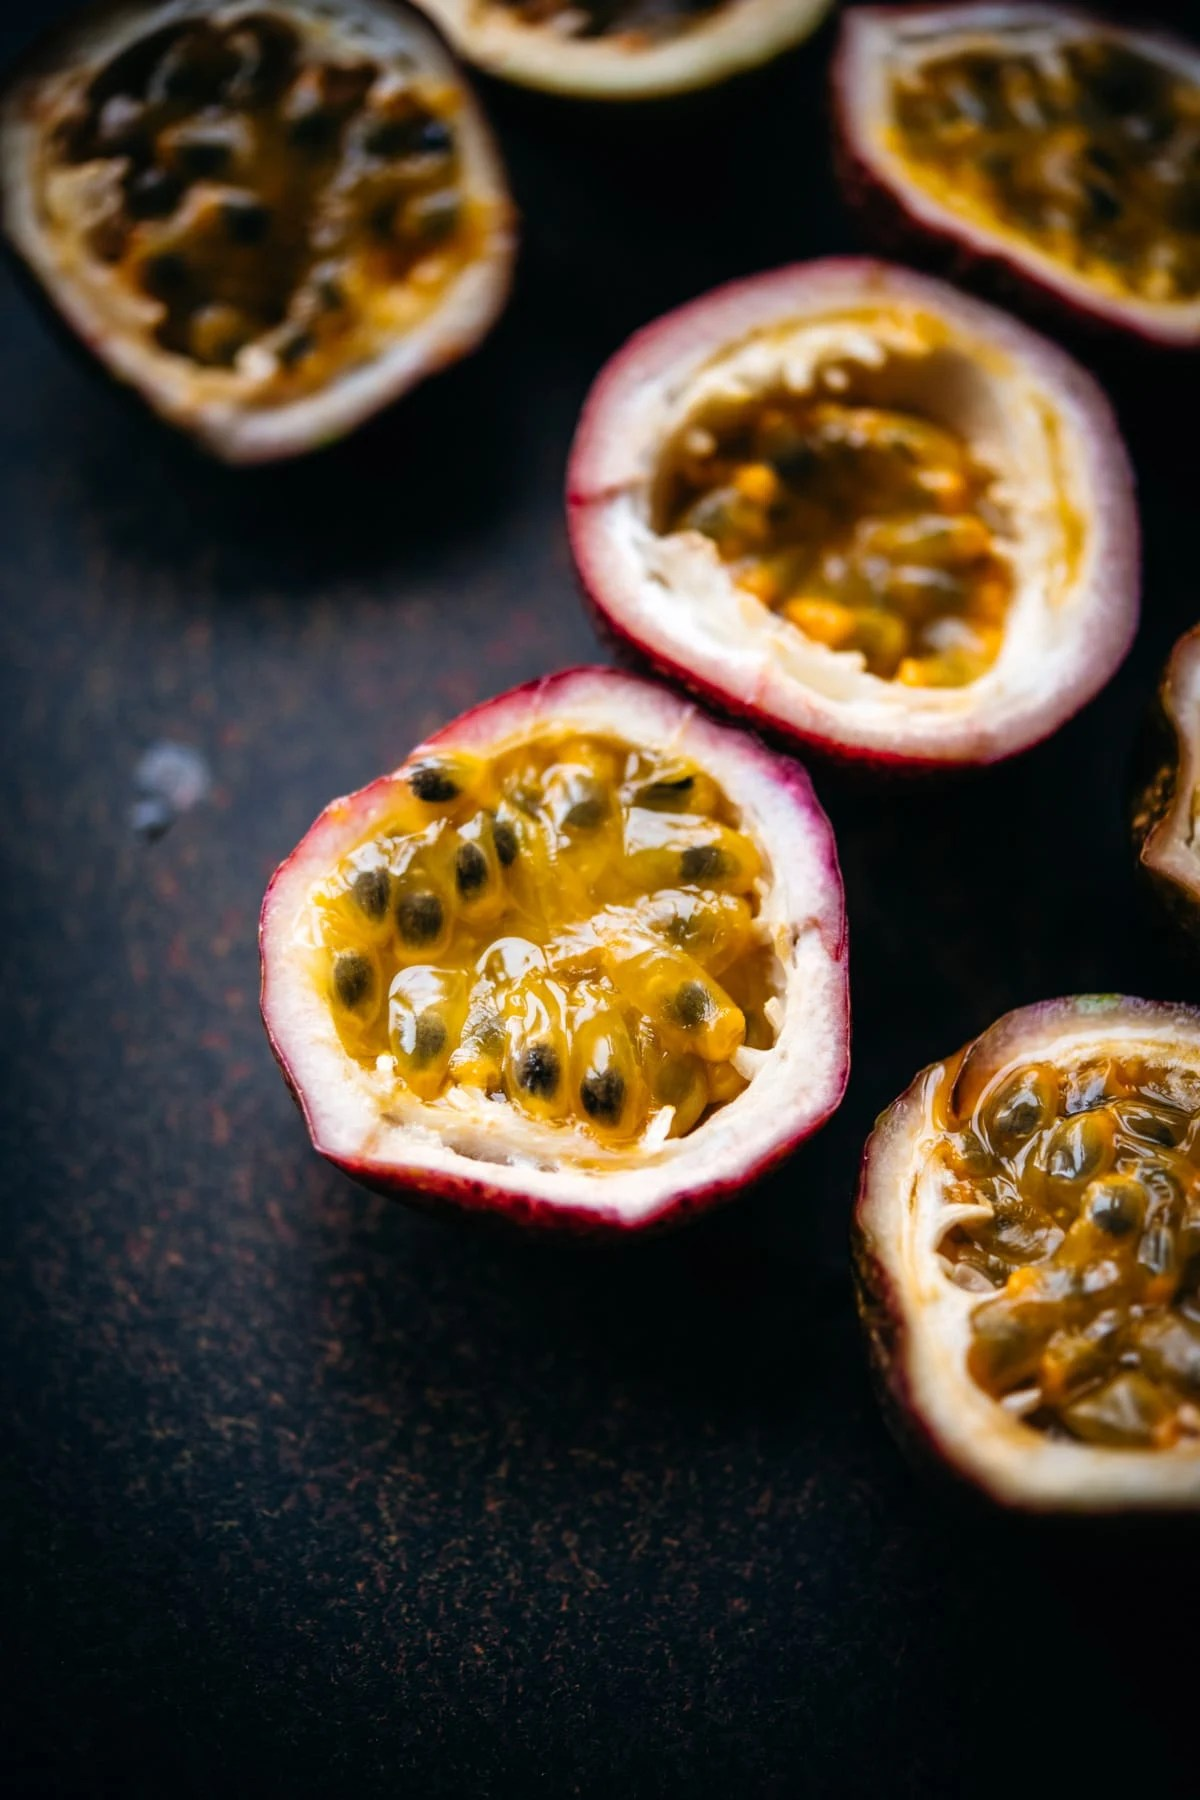 close up view of a passion fruit sliced in half.